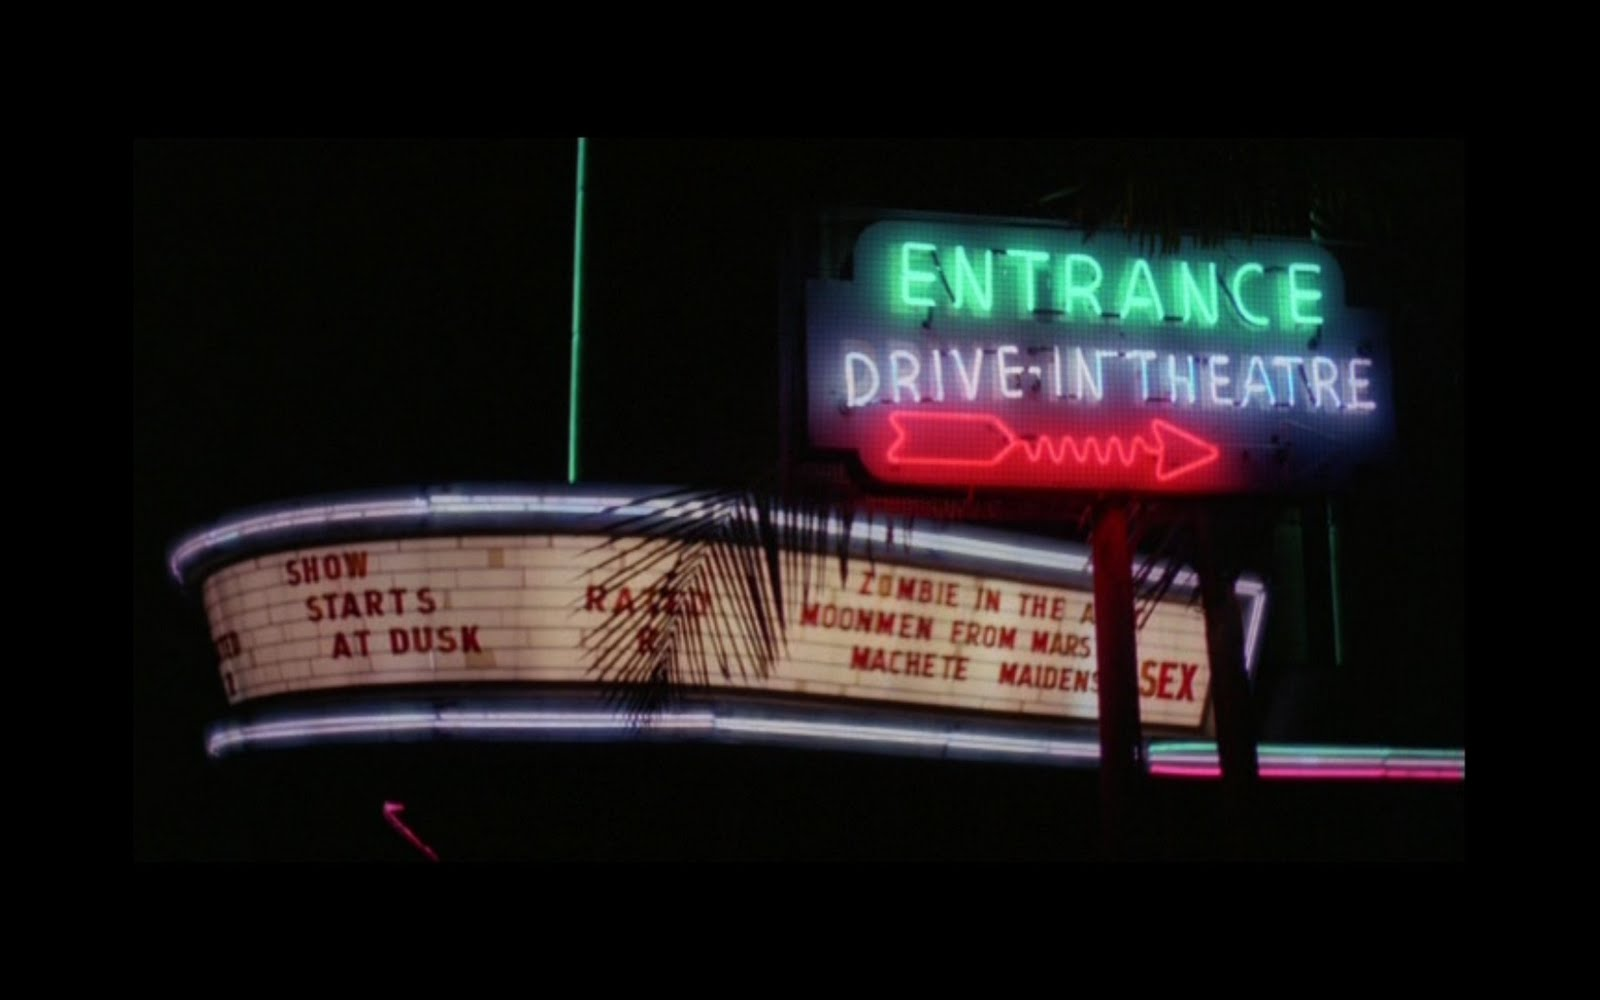 Drive-in marquee new movie trailers